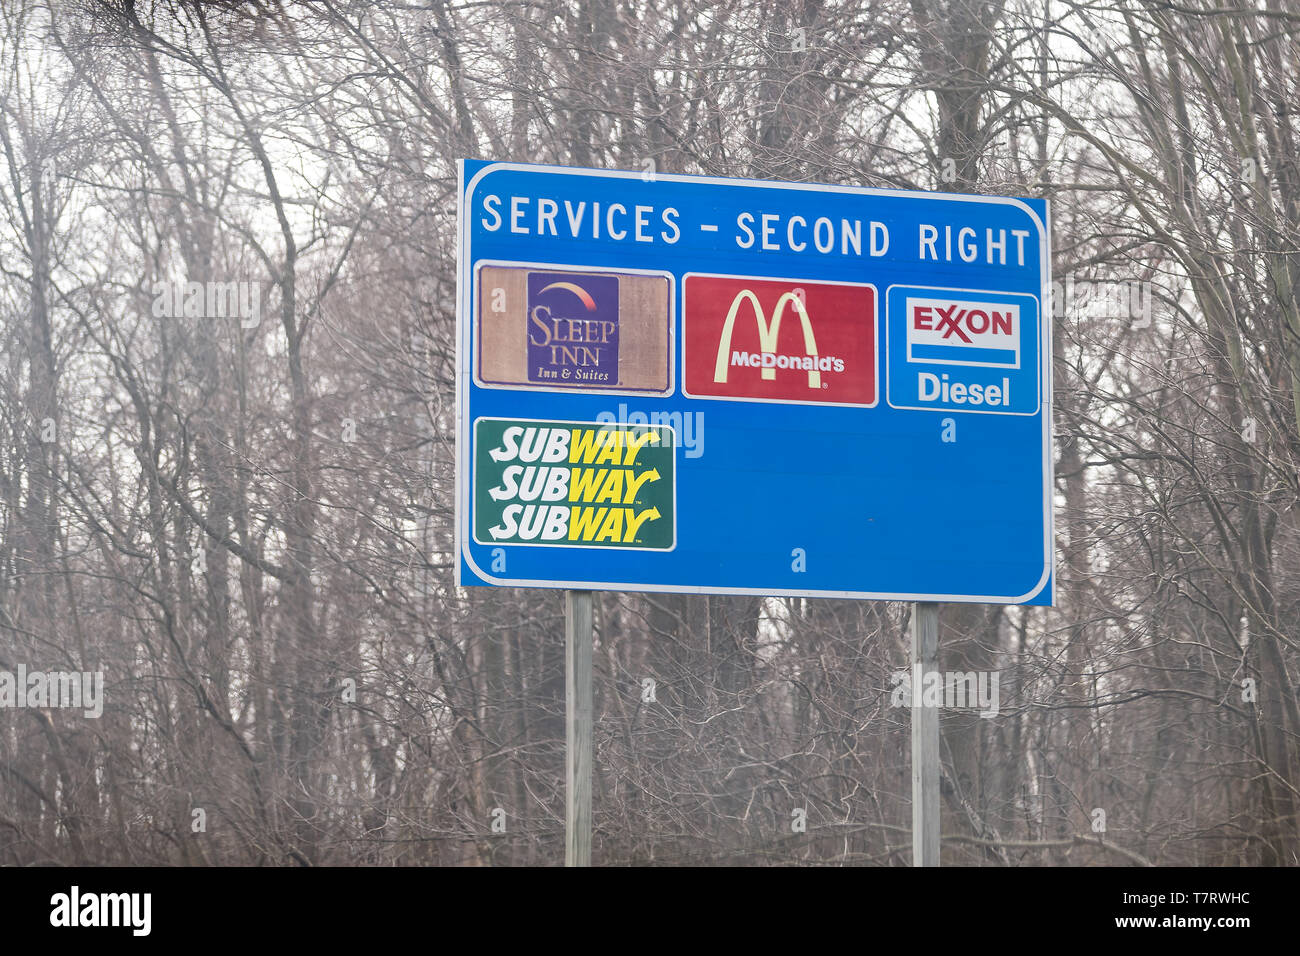 Leesburg, USA - April 6, 2018: Rural Virginia countryside in spring with blue exit sign on highway for food and service such as mcdonalds fast food, s - Stock Image